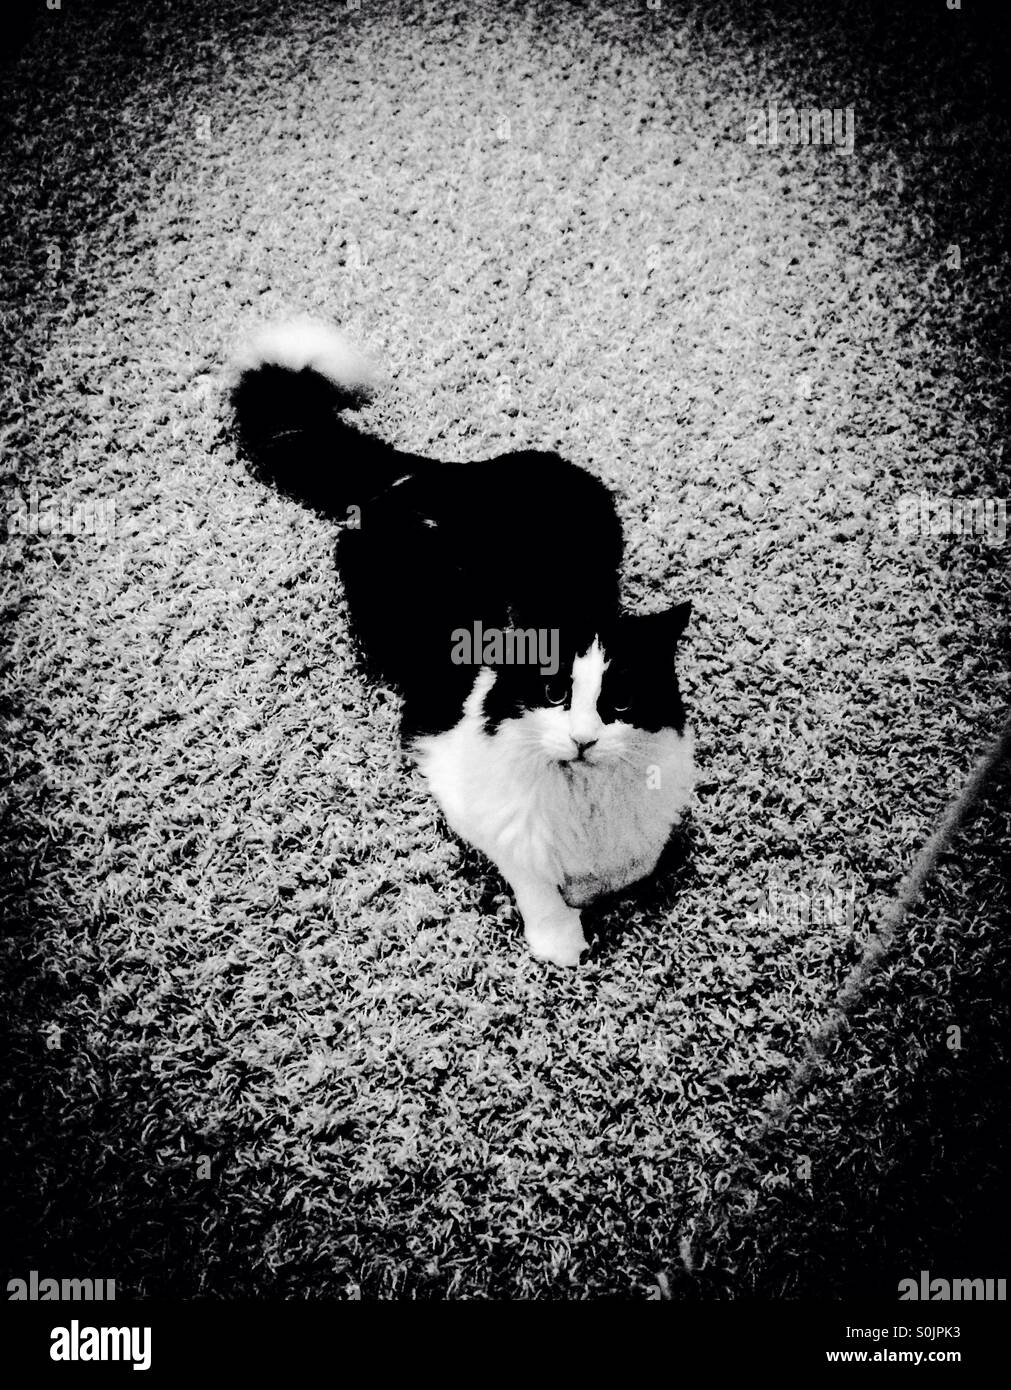 Black and white longhaired cat in black and white photo Stock Photo